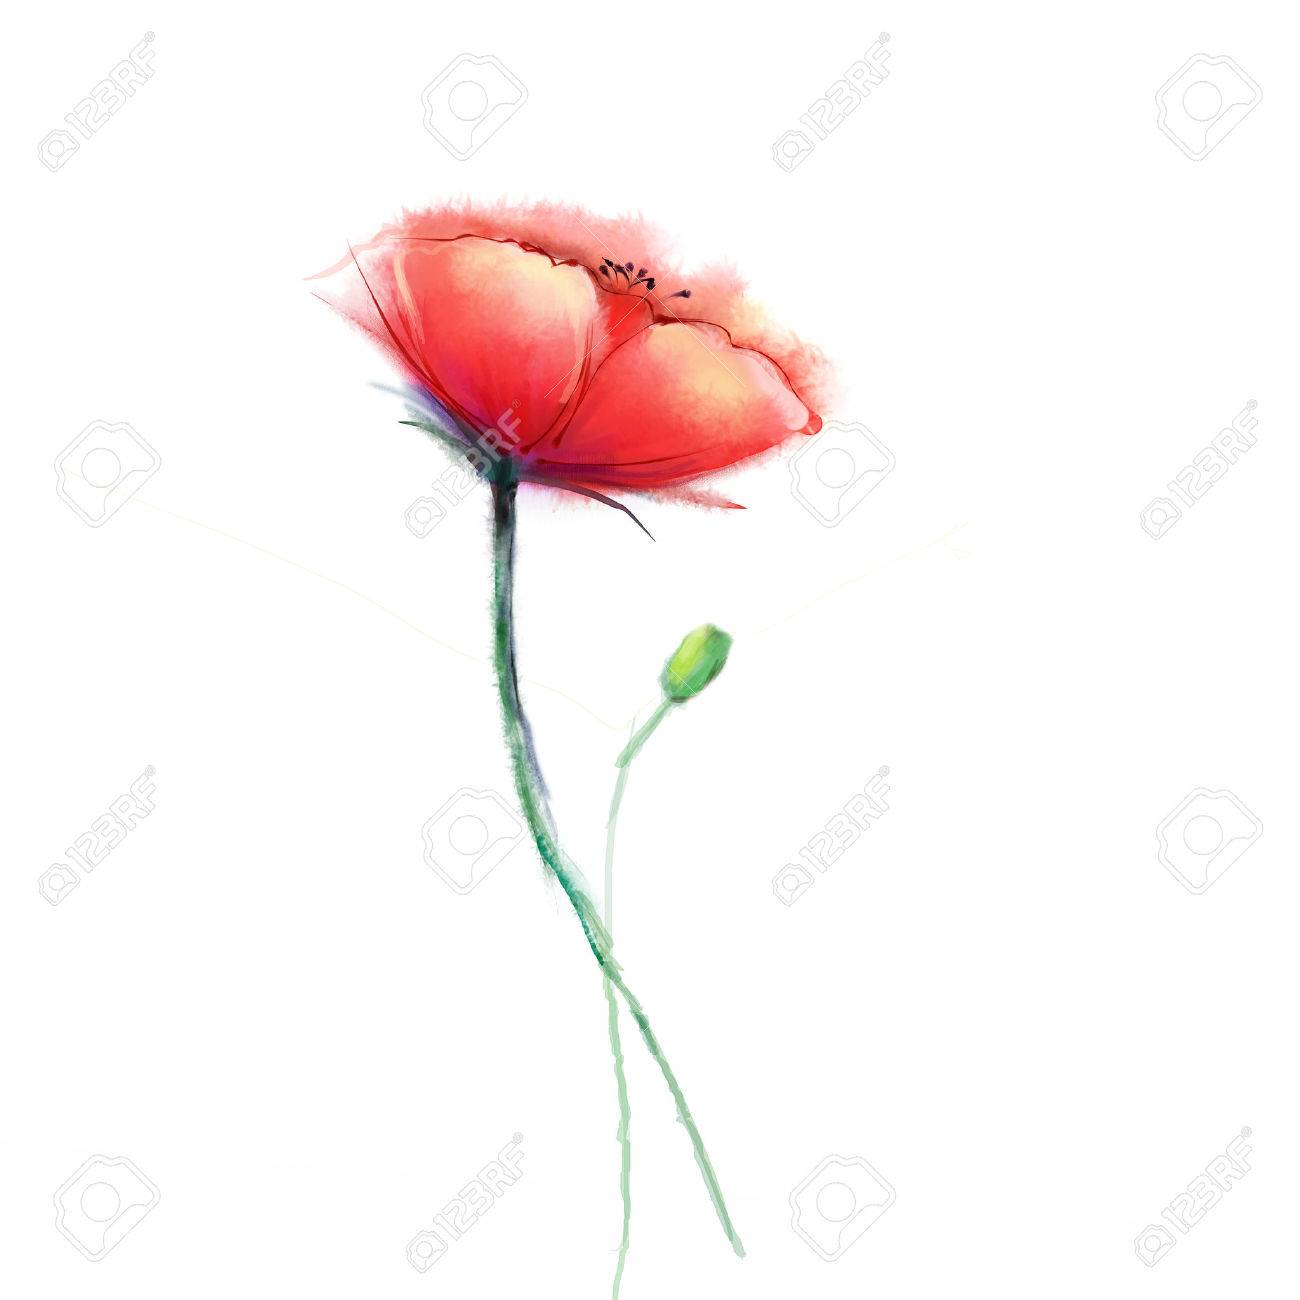 Watercolor Painting Poppy Flower Isolated Flowers On White